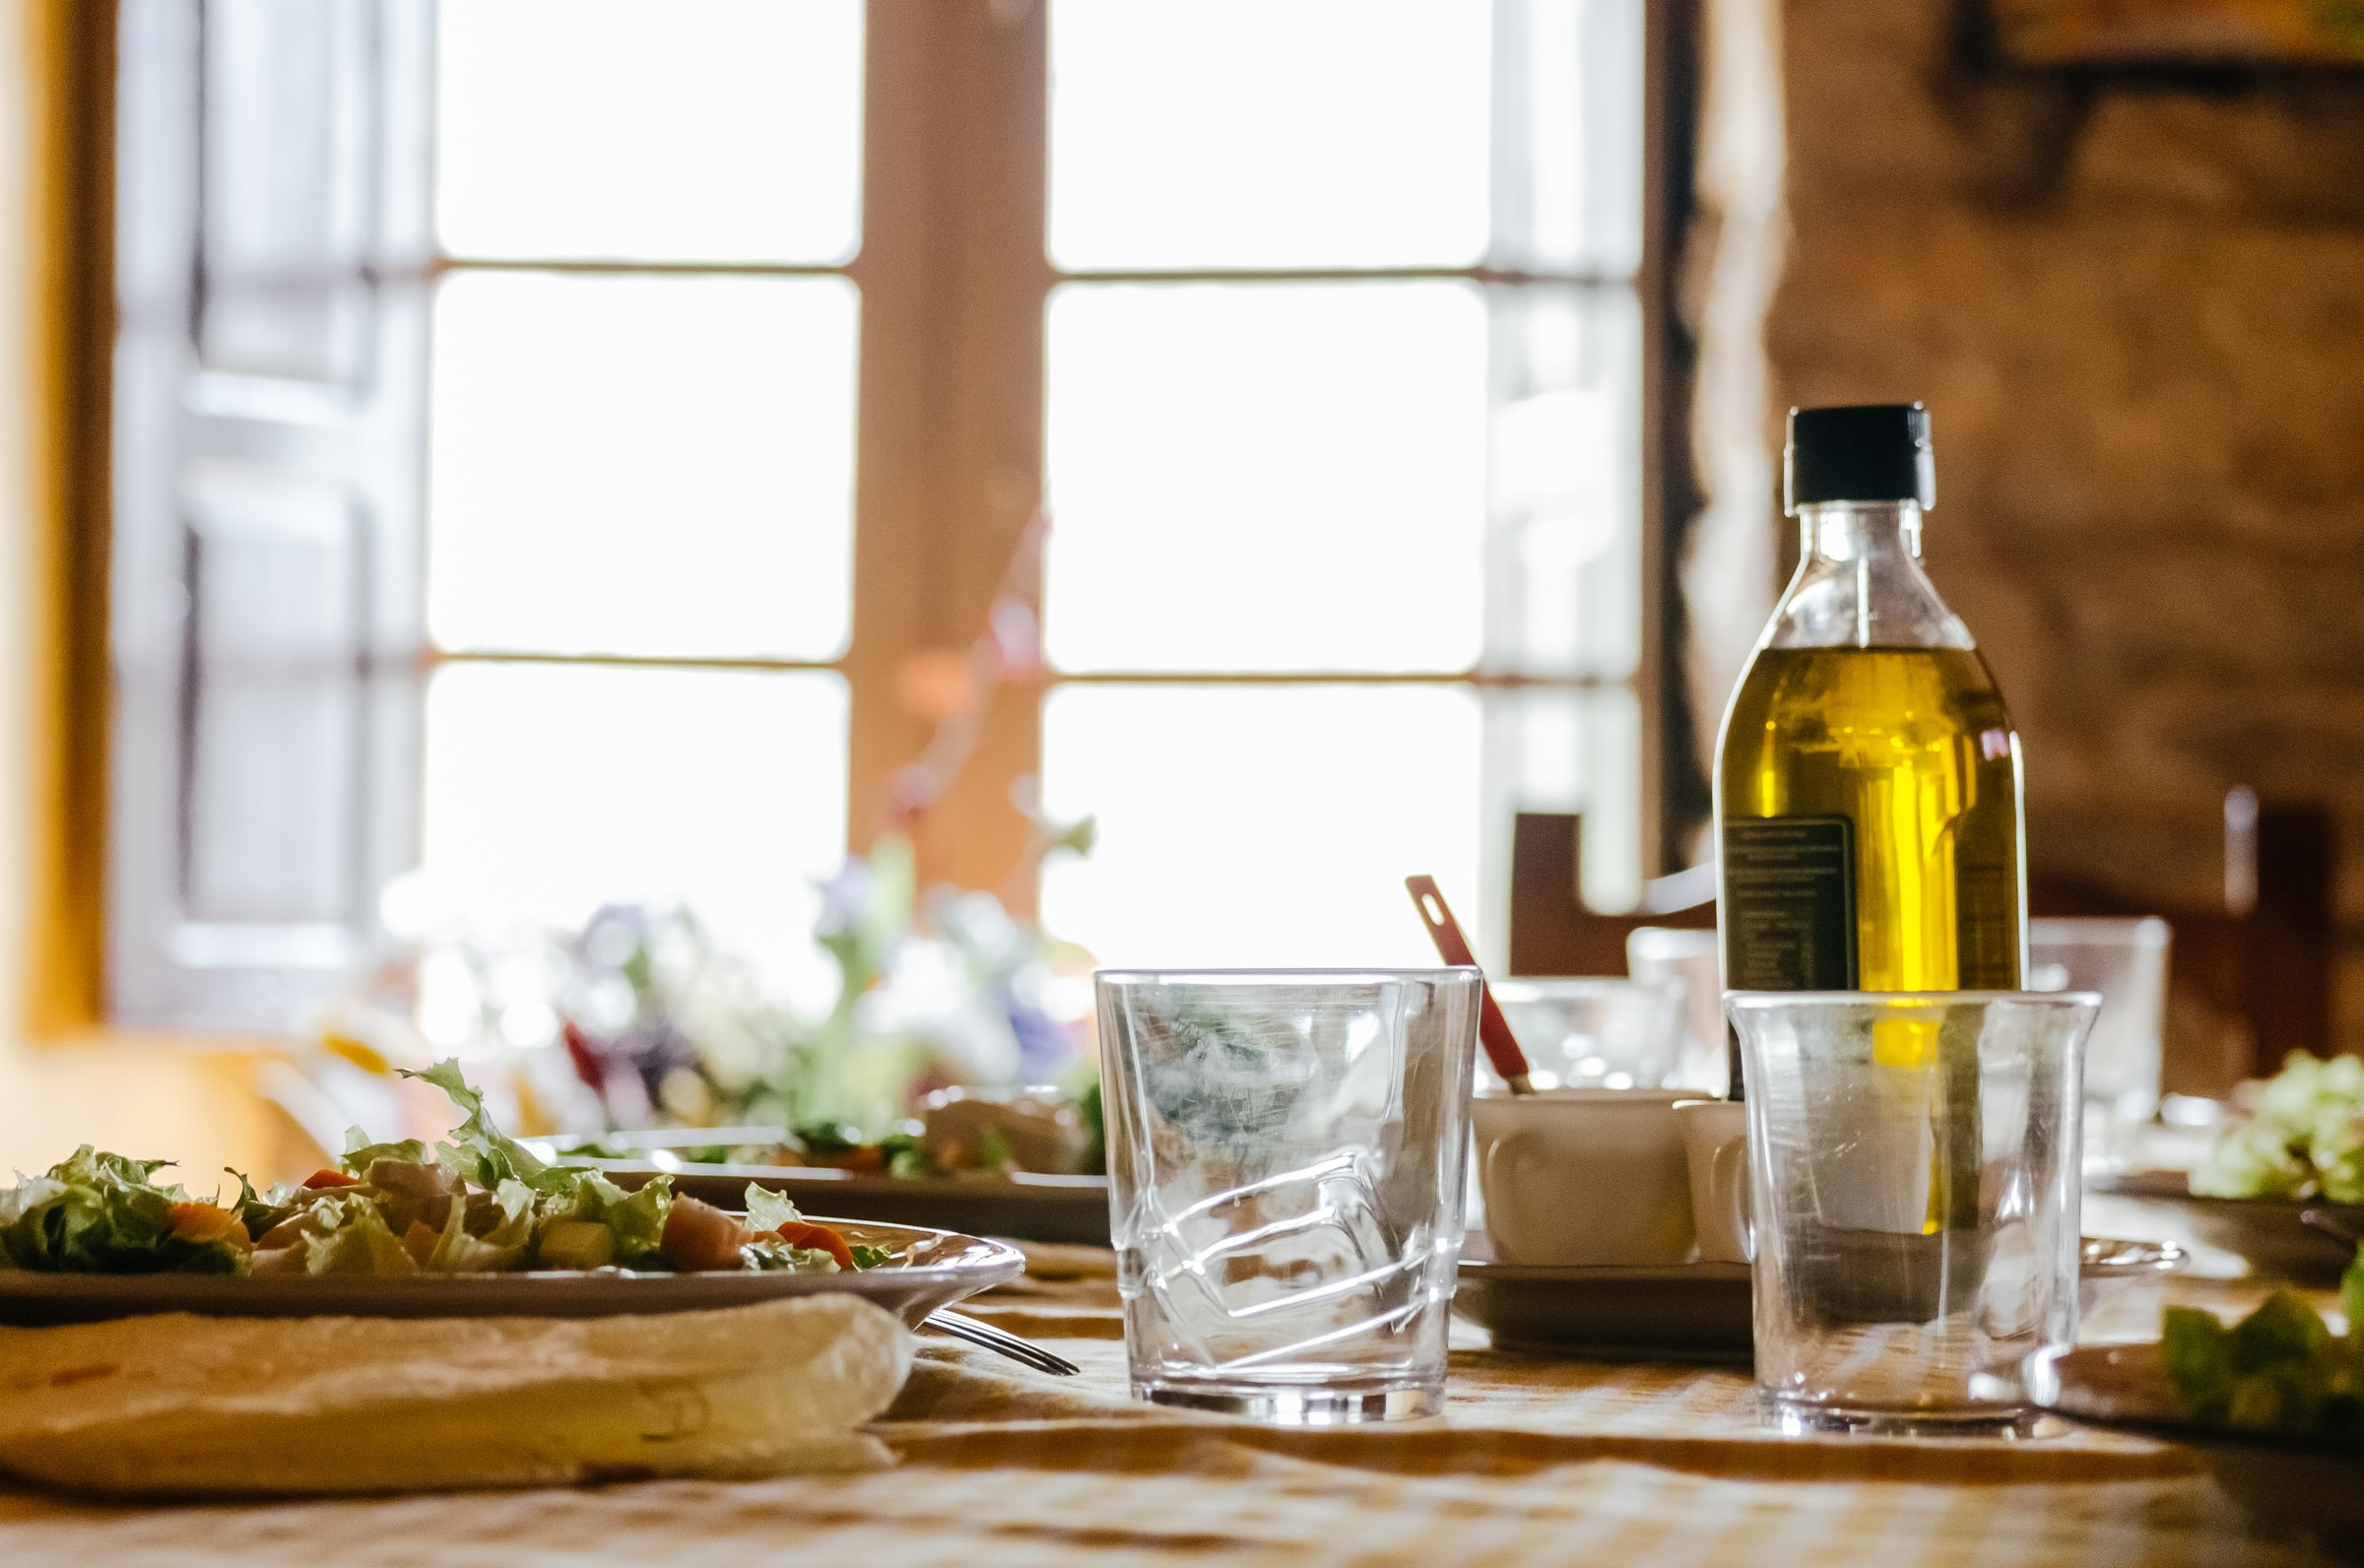 Canola Oil: The Healthier Cooking Option